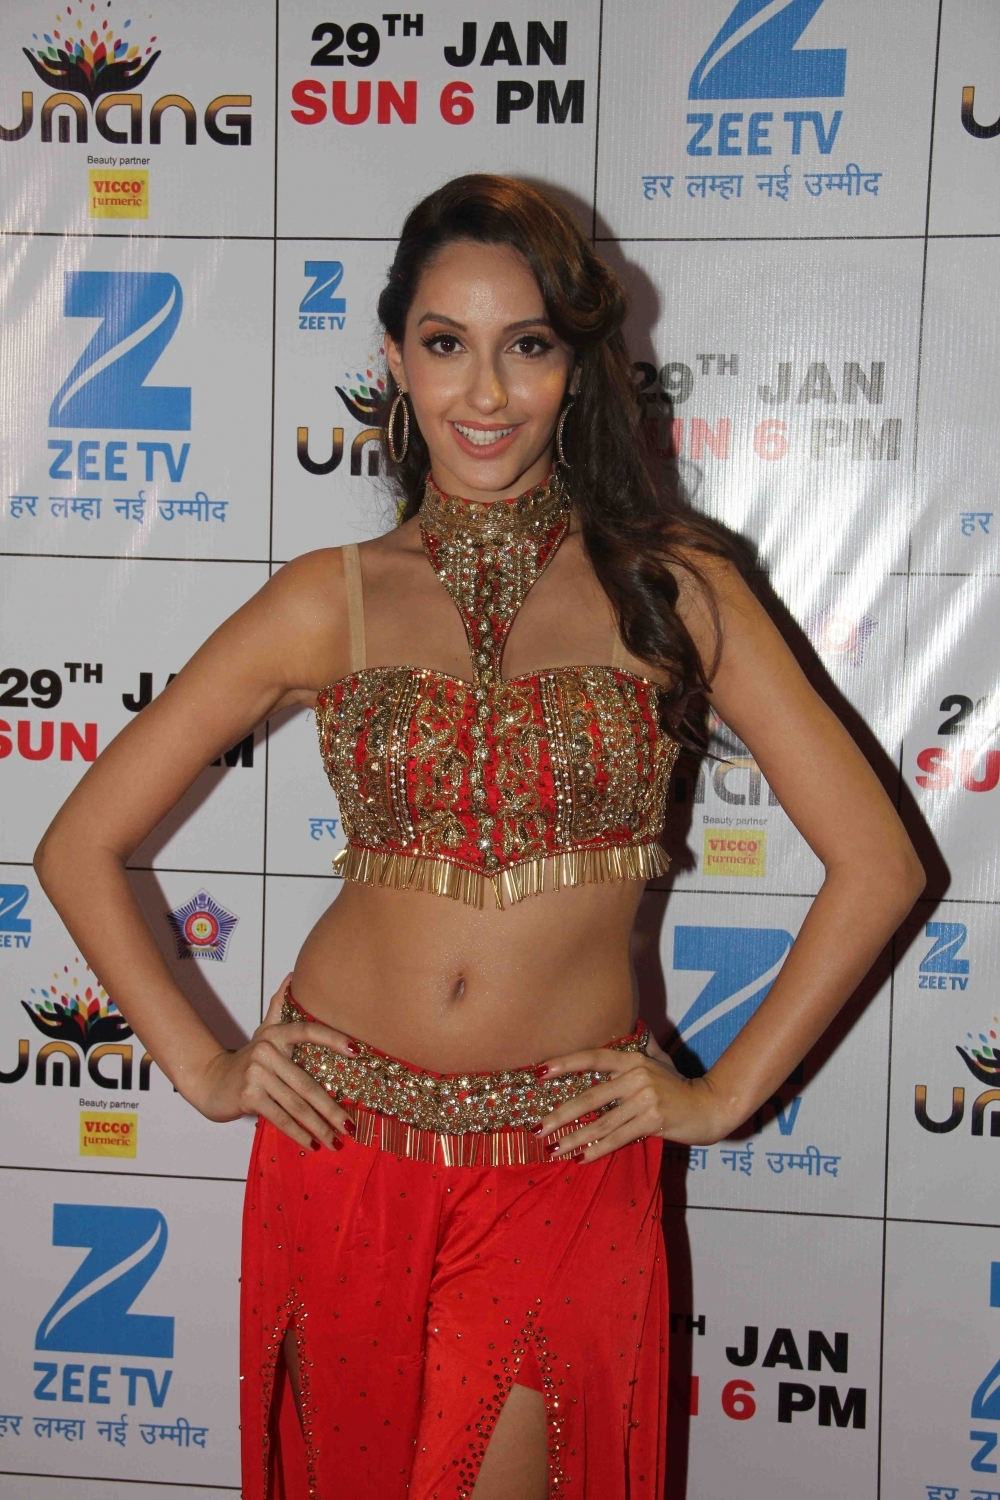 Mumbai: Actress Nora Fatehi during the Umang Mumbai Police Show 2017 in Mumbai on Jan 22, 2017. (Photo: IANS)